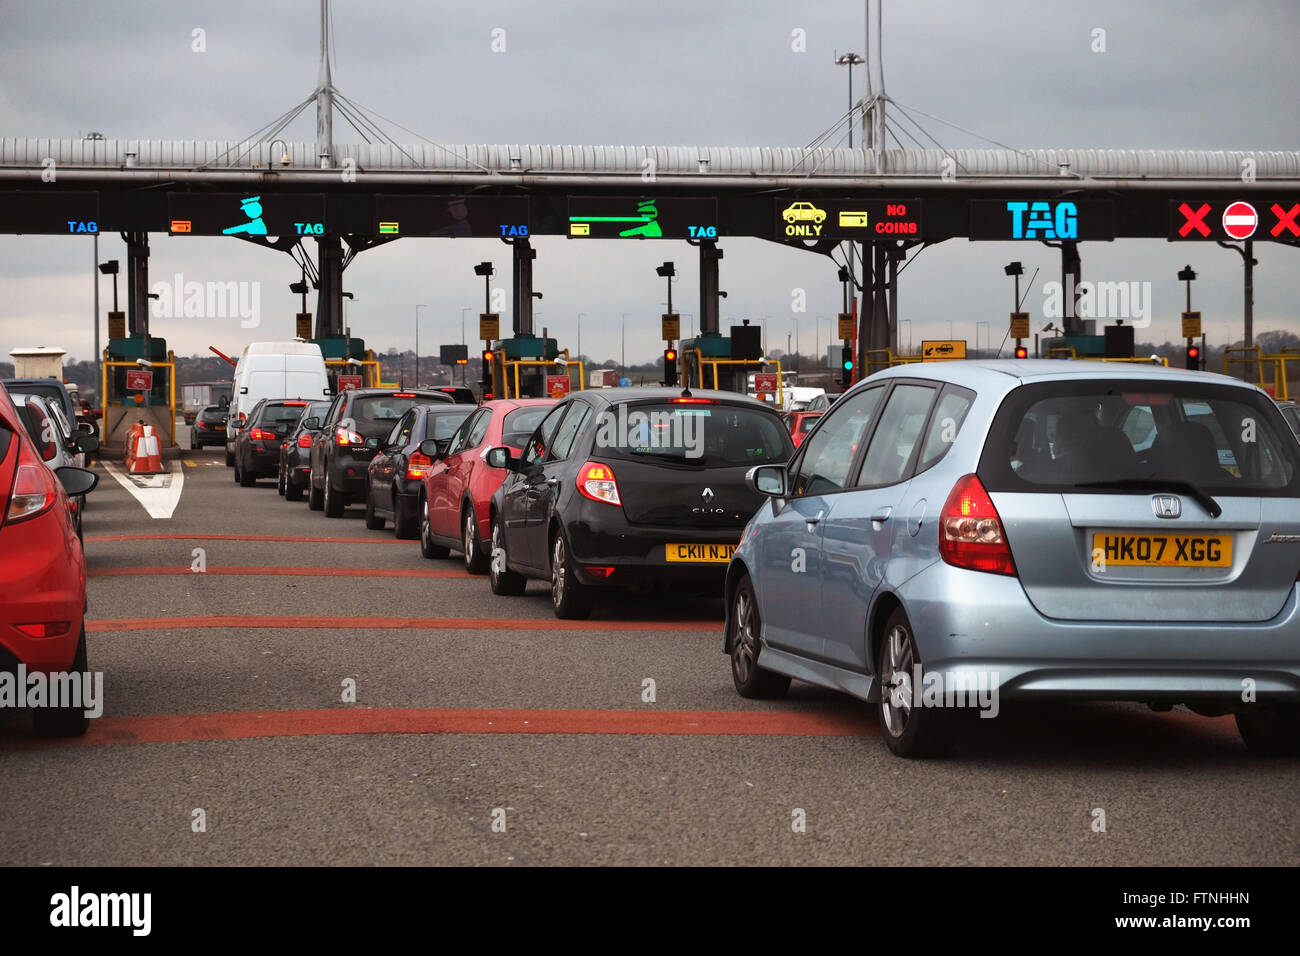 The Severn Bridge Tolls in South Wales - Stock Image